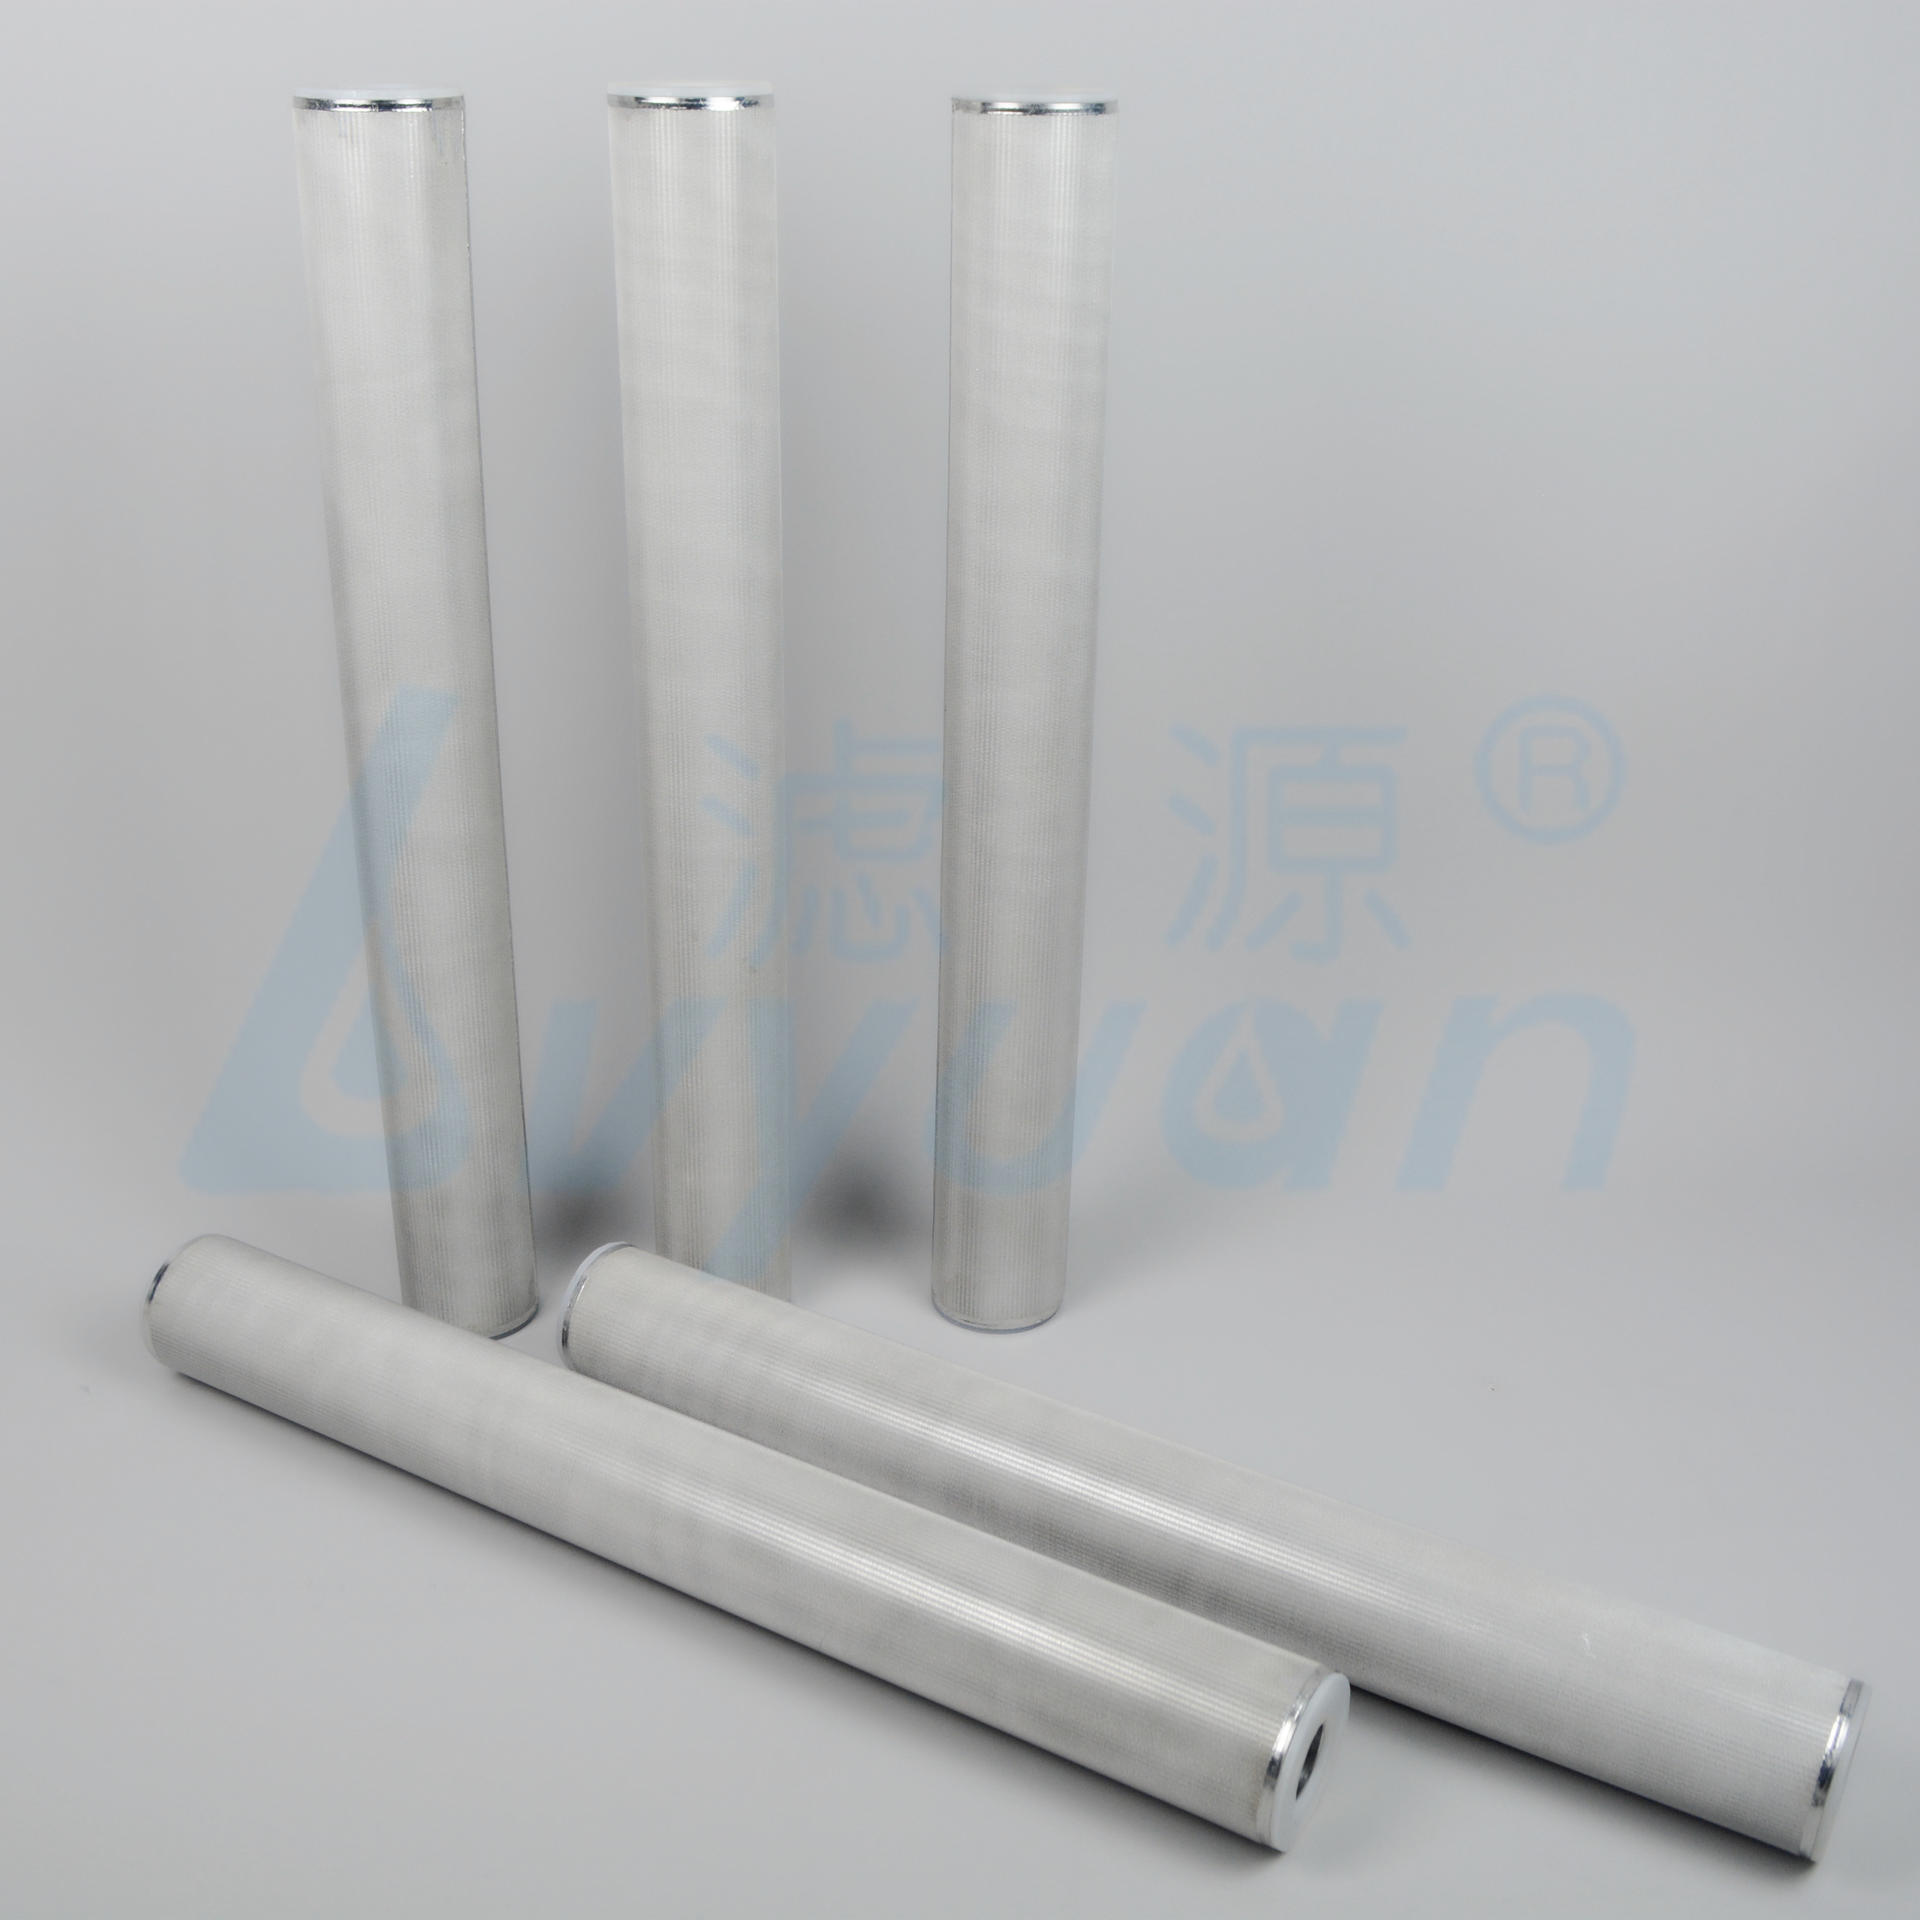 sintering stainless steel pleated filter cartridge /25 micron stainless steel filter tube for vegetable oil